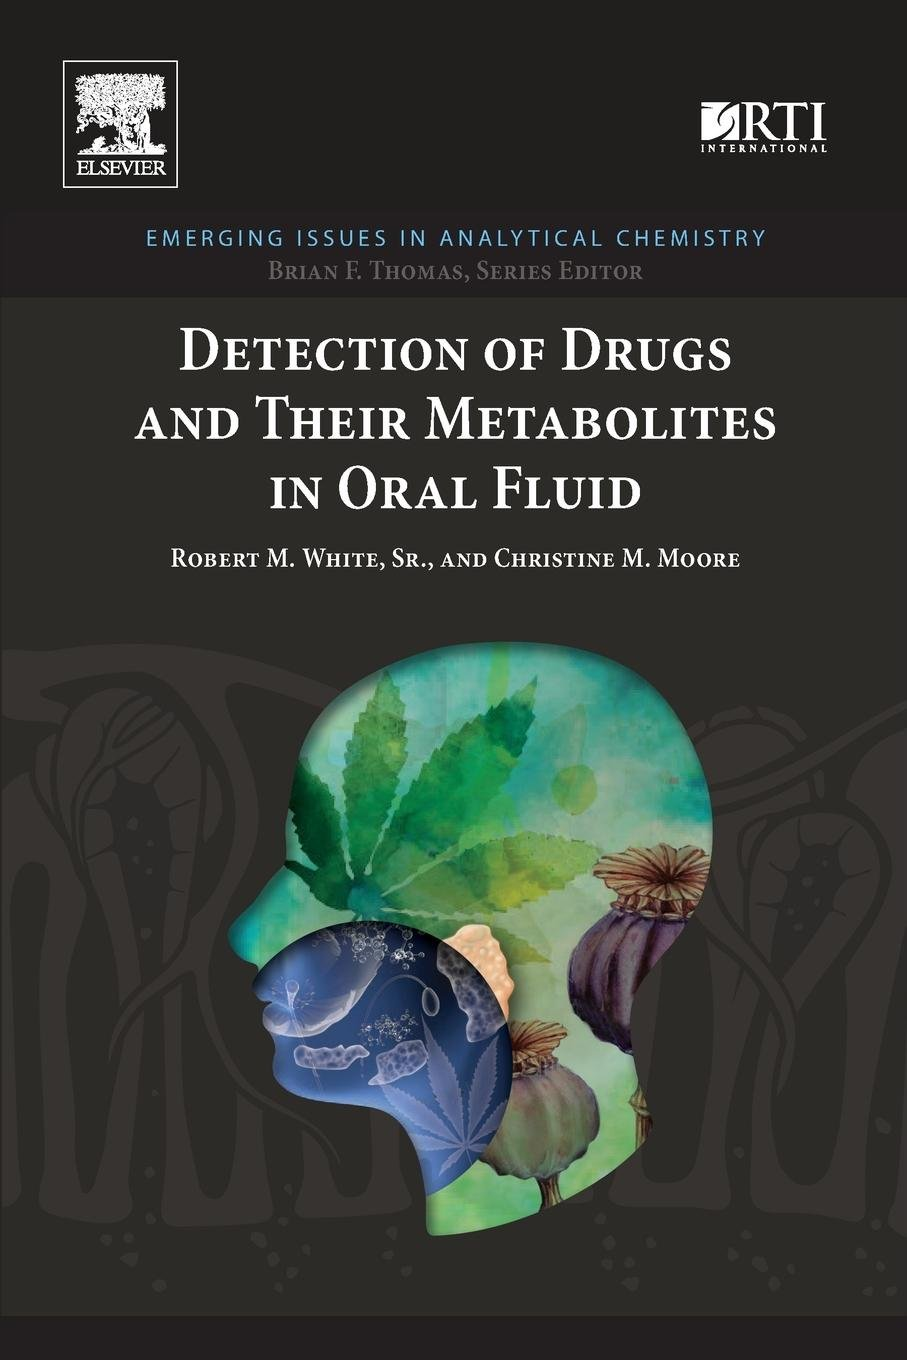 Detection of Drugs and Their Metabolites in Oral Fluid (Emerging Issues in Analytical Chemistry)